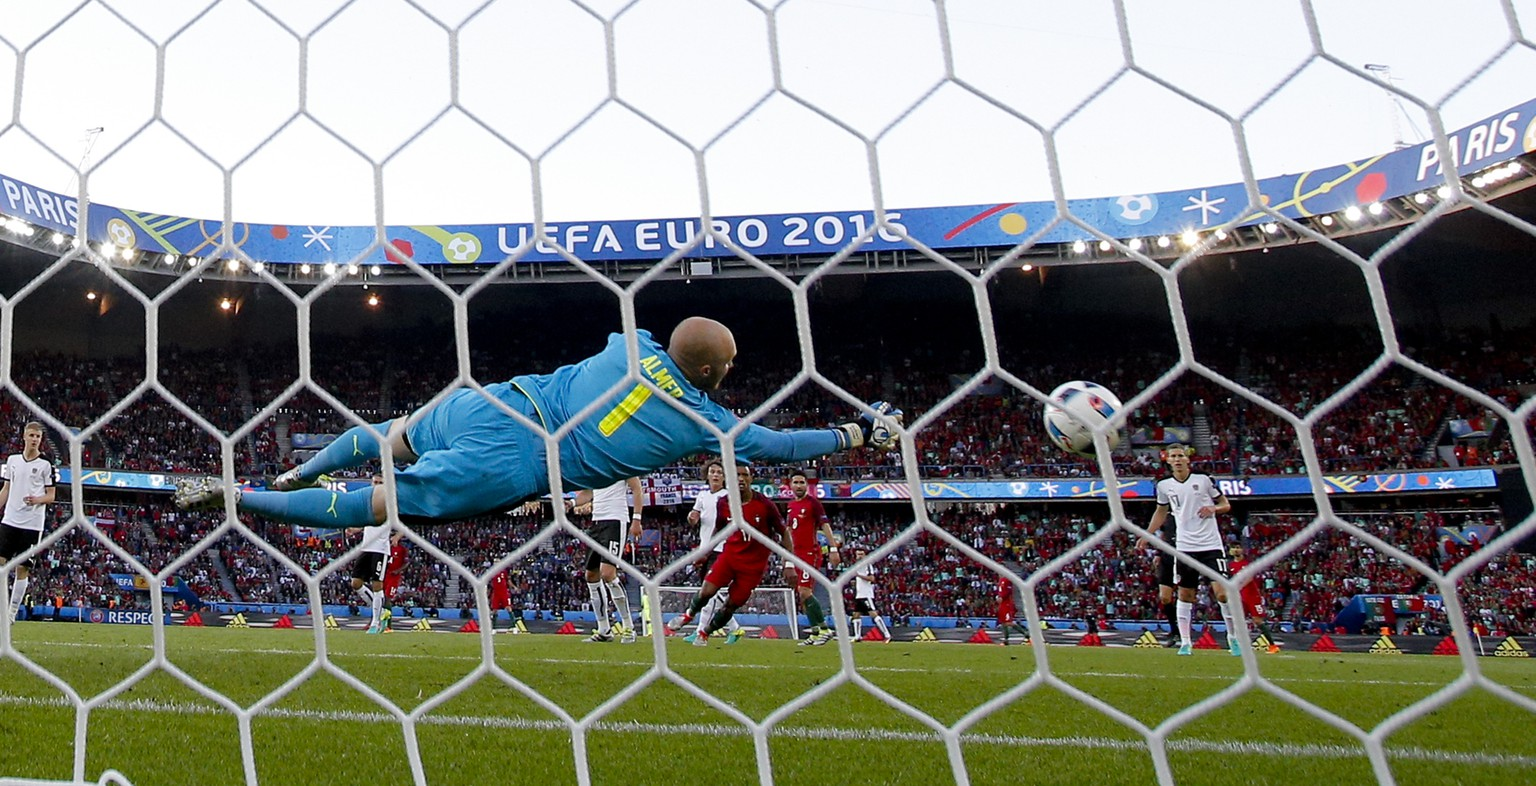 Austria goalkeeper Robert Almer dives for the ball during the Euro 2016 Group F soccer match between Portugal and Austria at the Parc des Princes stadium in Paris, France, Saturday, June 18, 2016. (AP Photo/Christophe Ena)